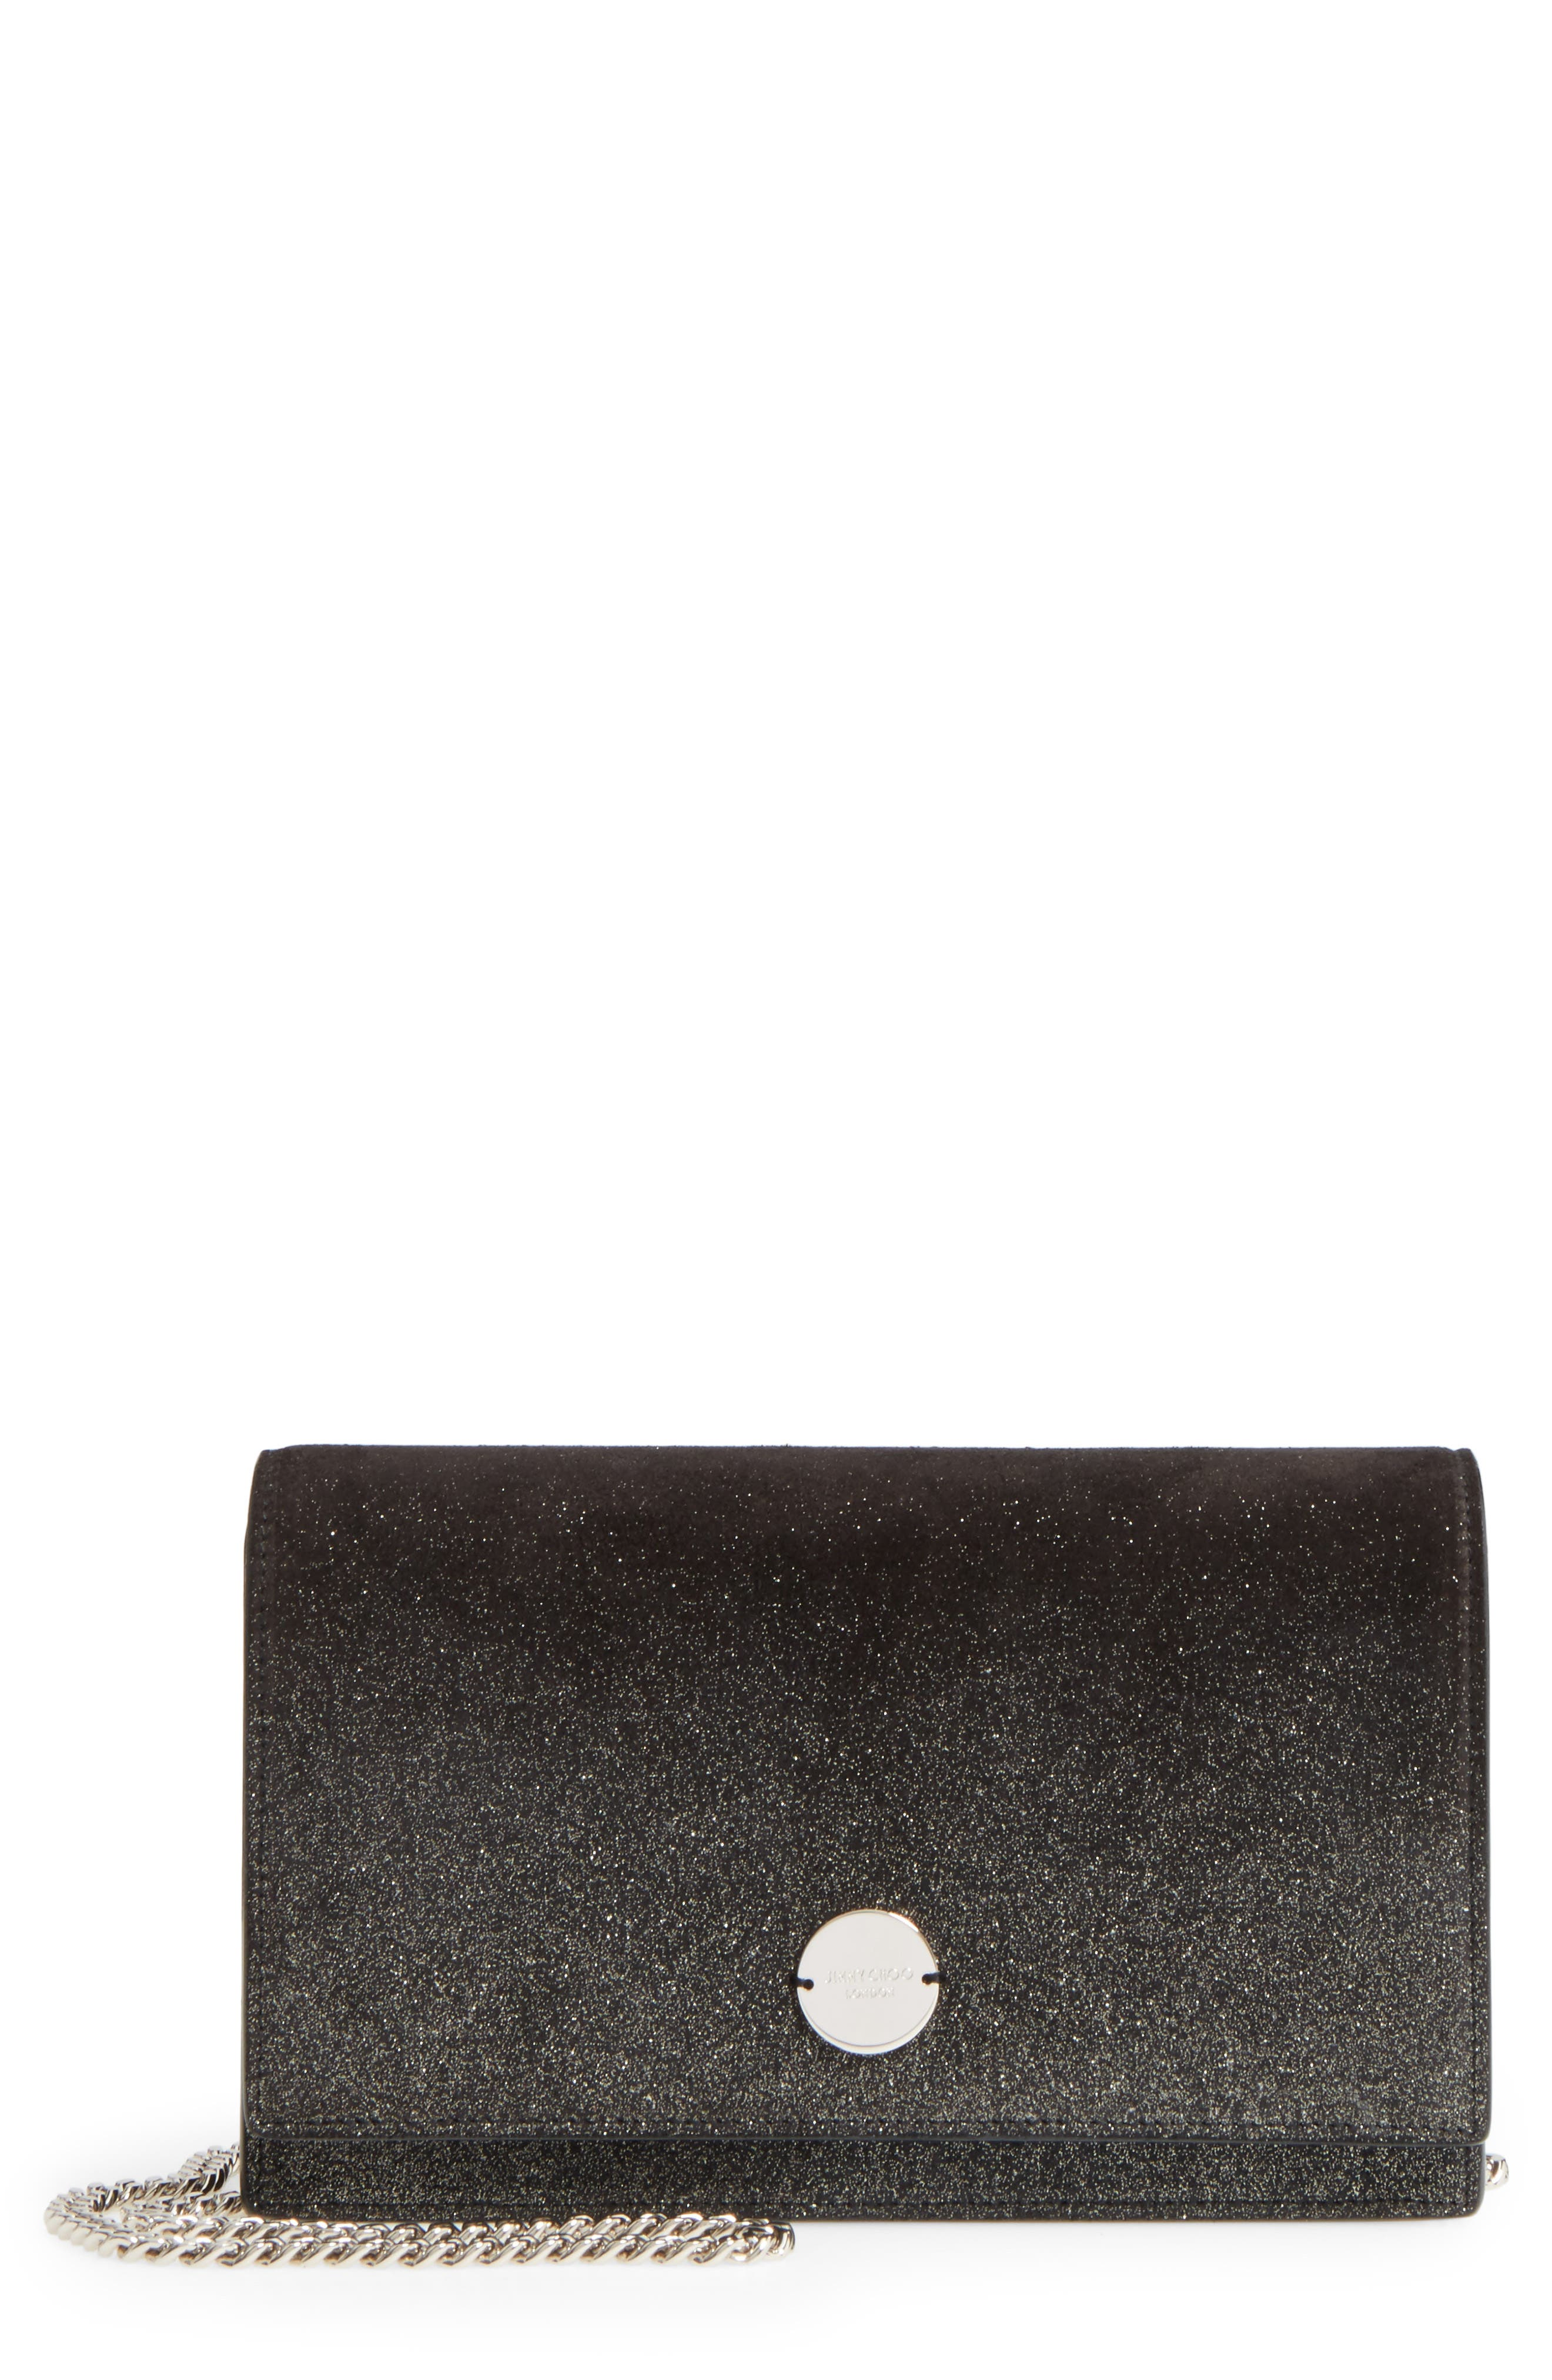 Alternate Image 1 Selected - Jimmy Choo Florence Ombré Glitter Suede Clutch